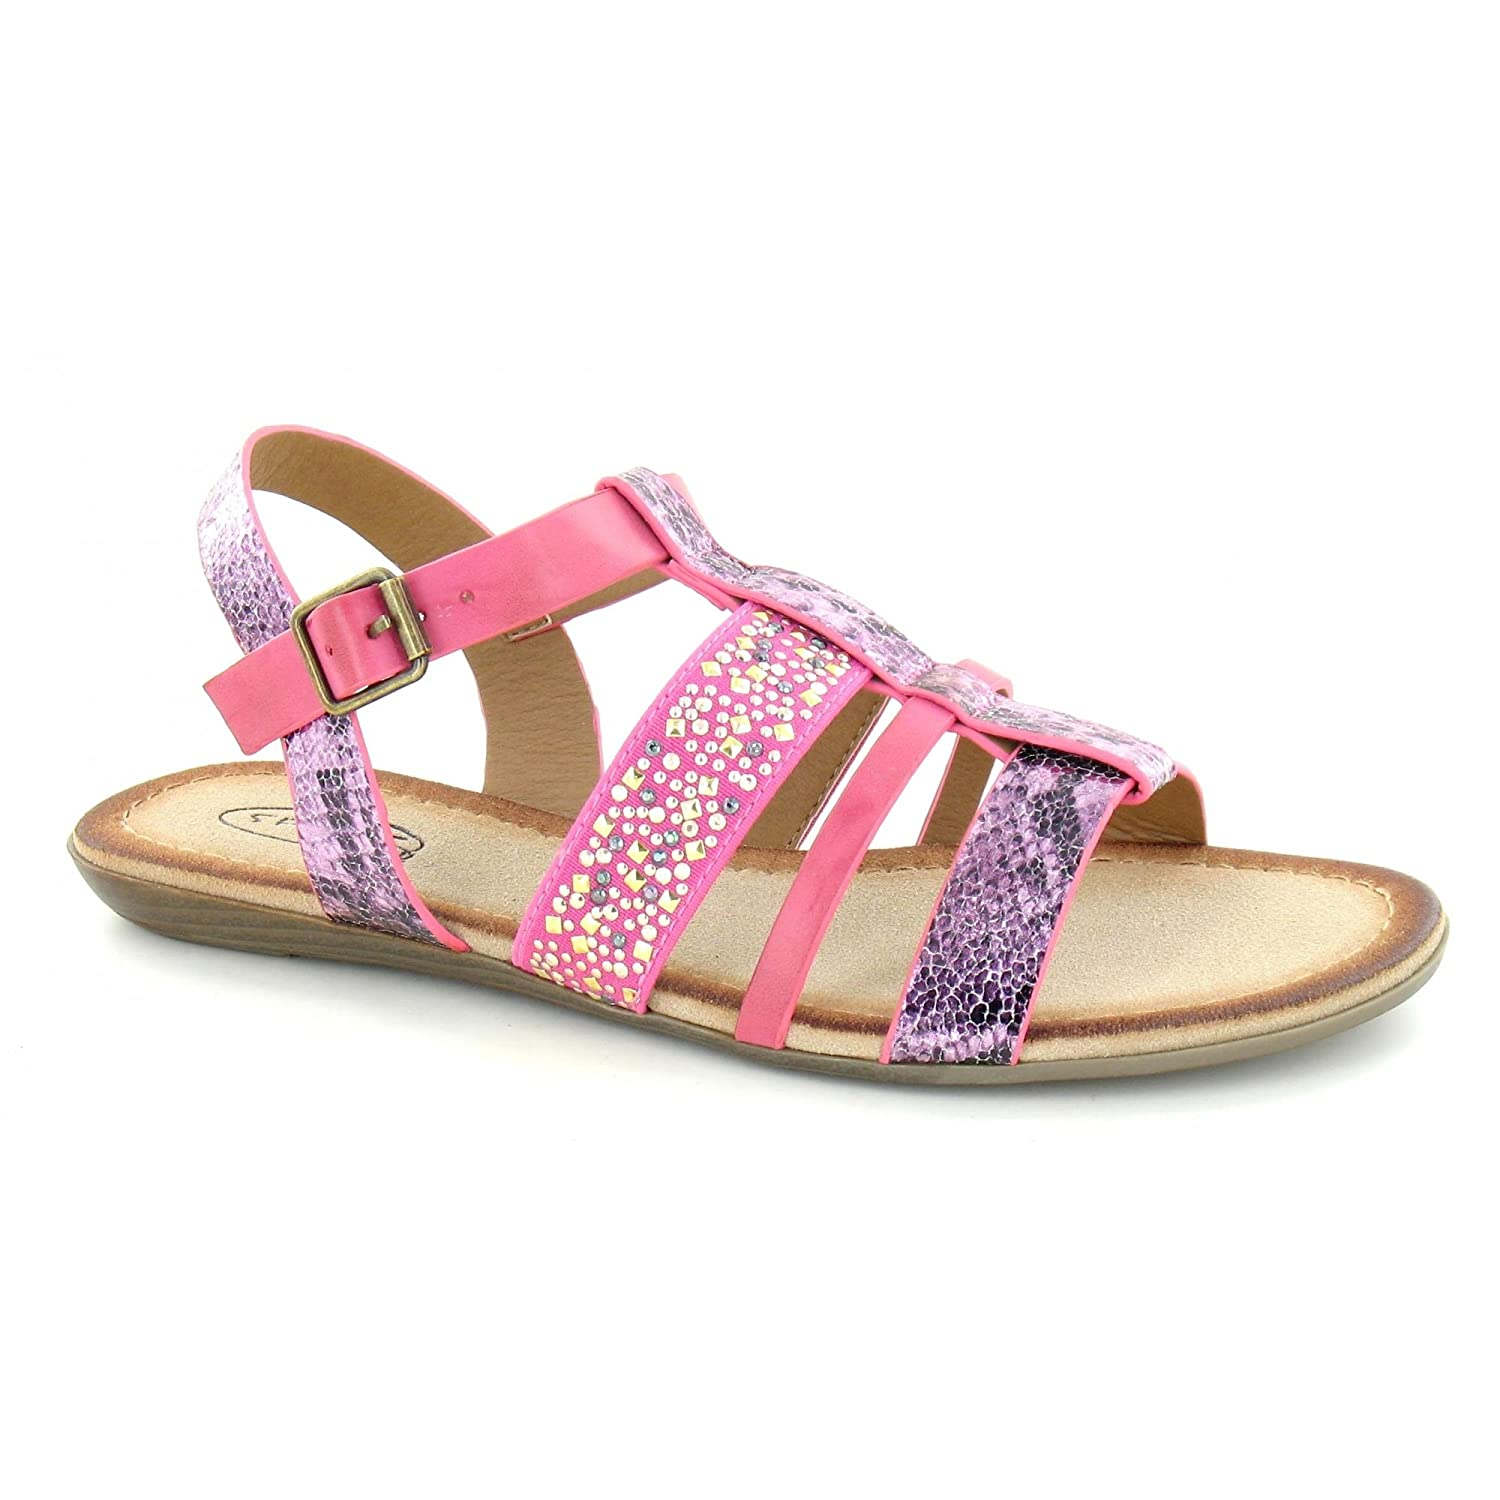 69a059046057f1 Savannah Womens Ladies Strappy Jewel Gladiator Sandals  Amazon.co.uk  Shoes    Bags